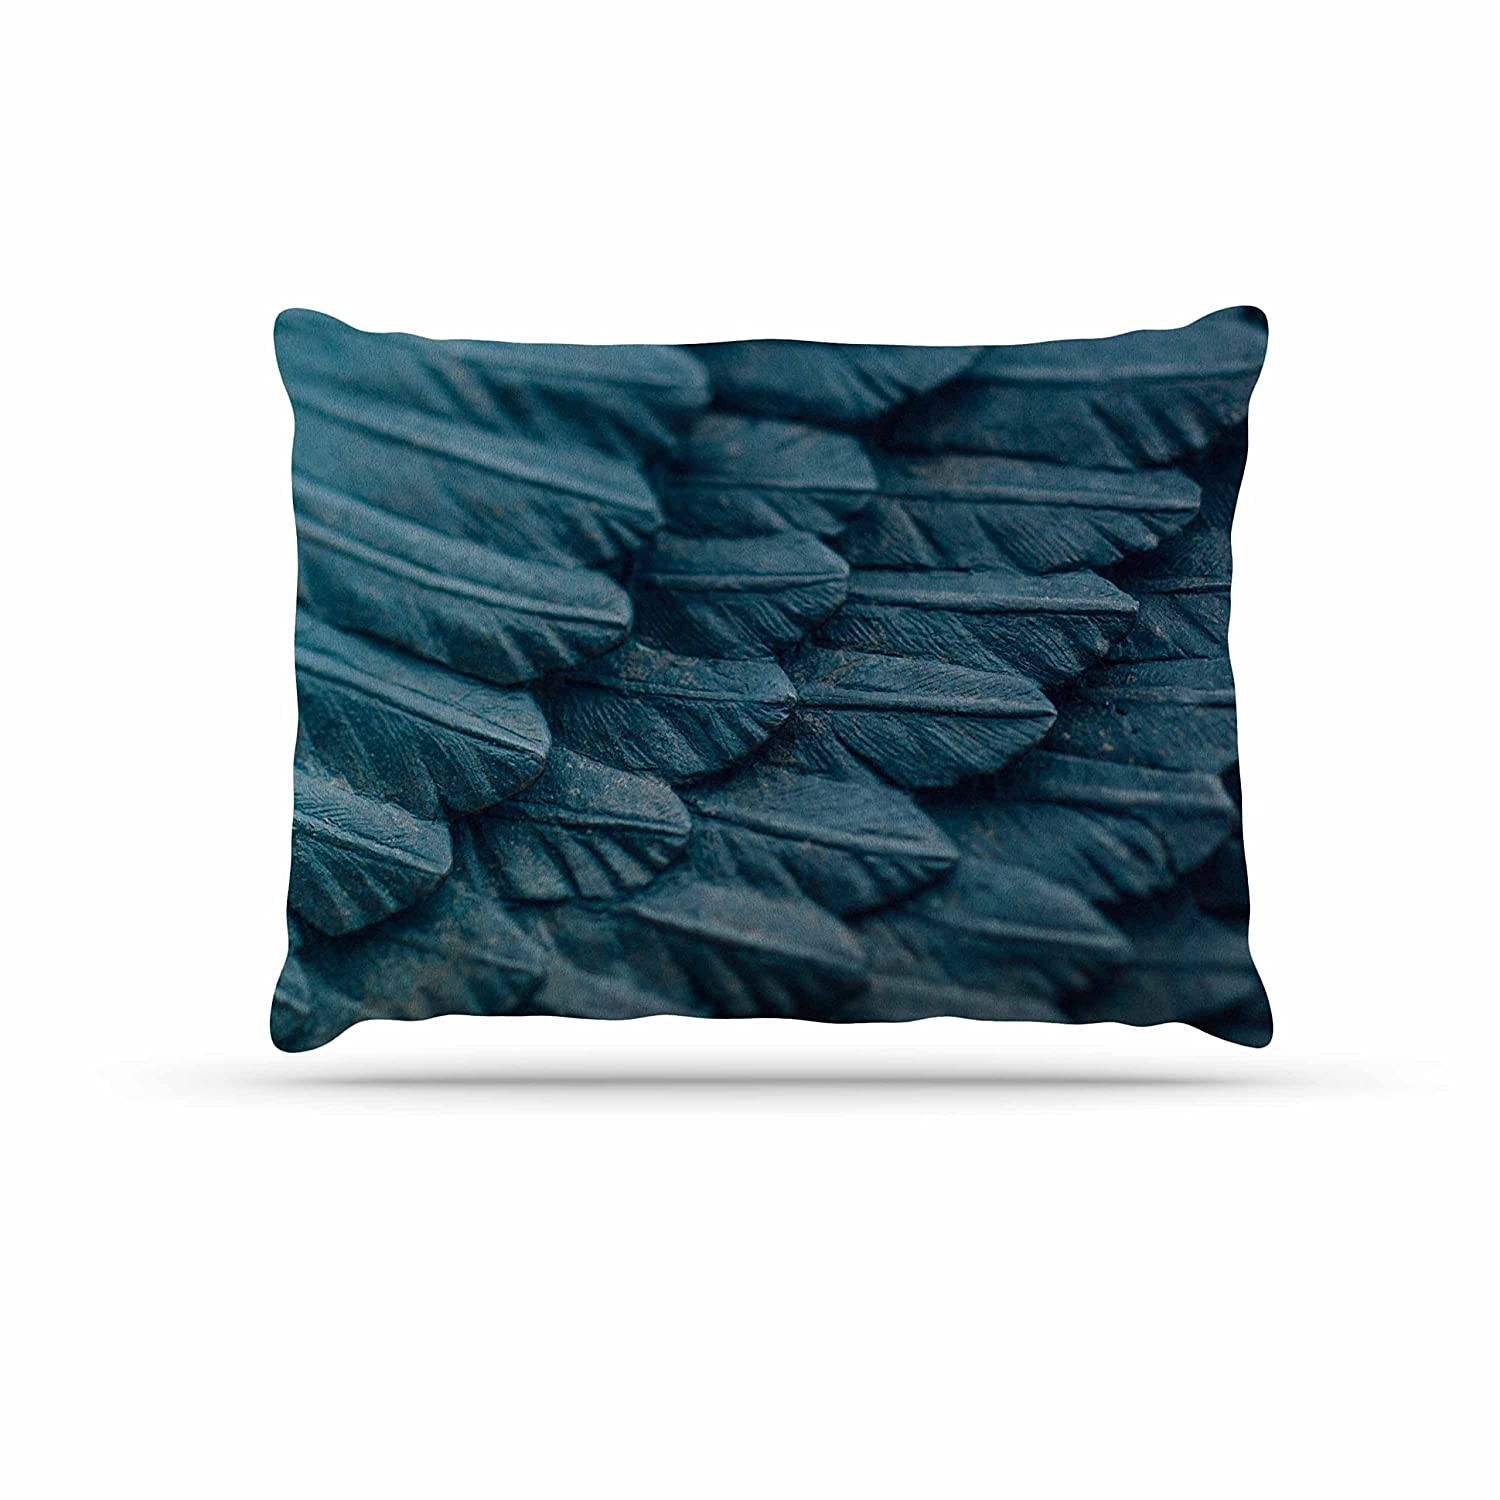 KESS InHouse Ann Barnes Ombre Angel bluee Celestial Dog Bed, 50  x 40